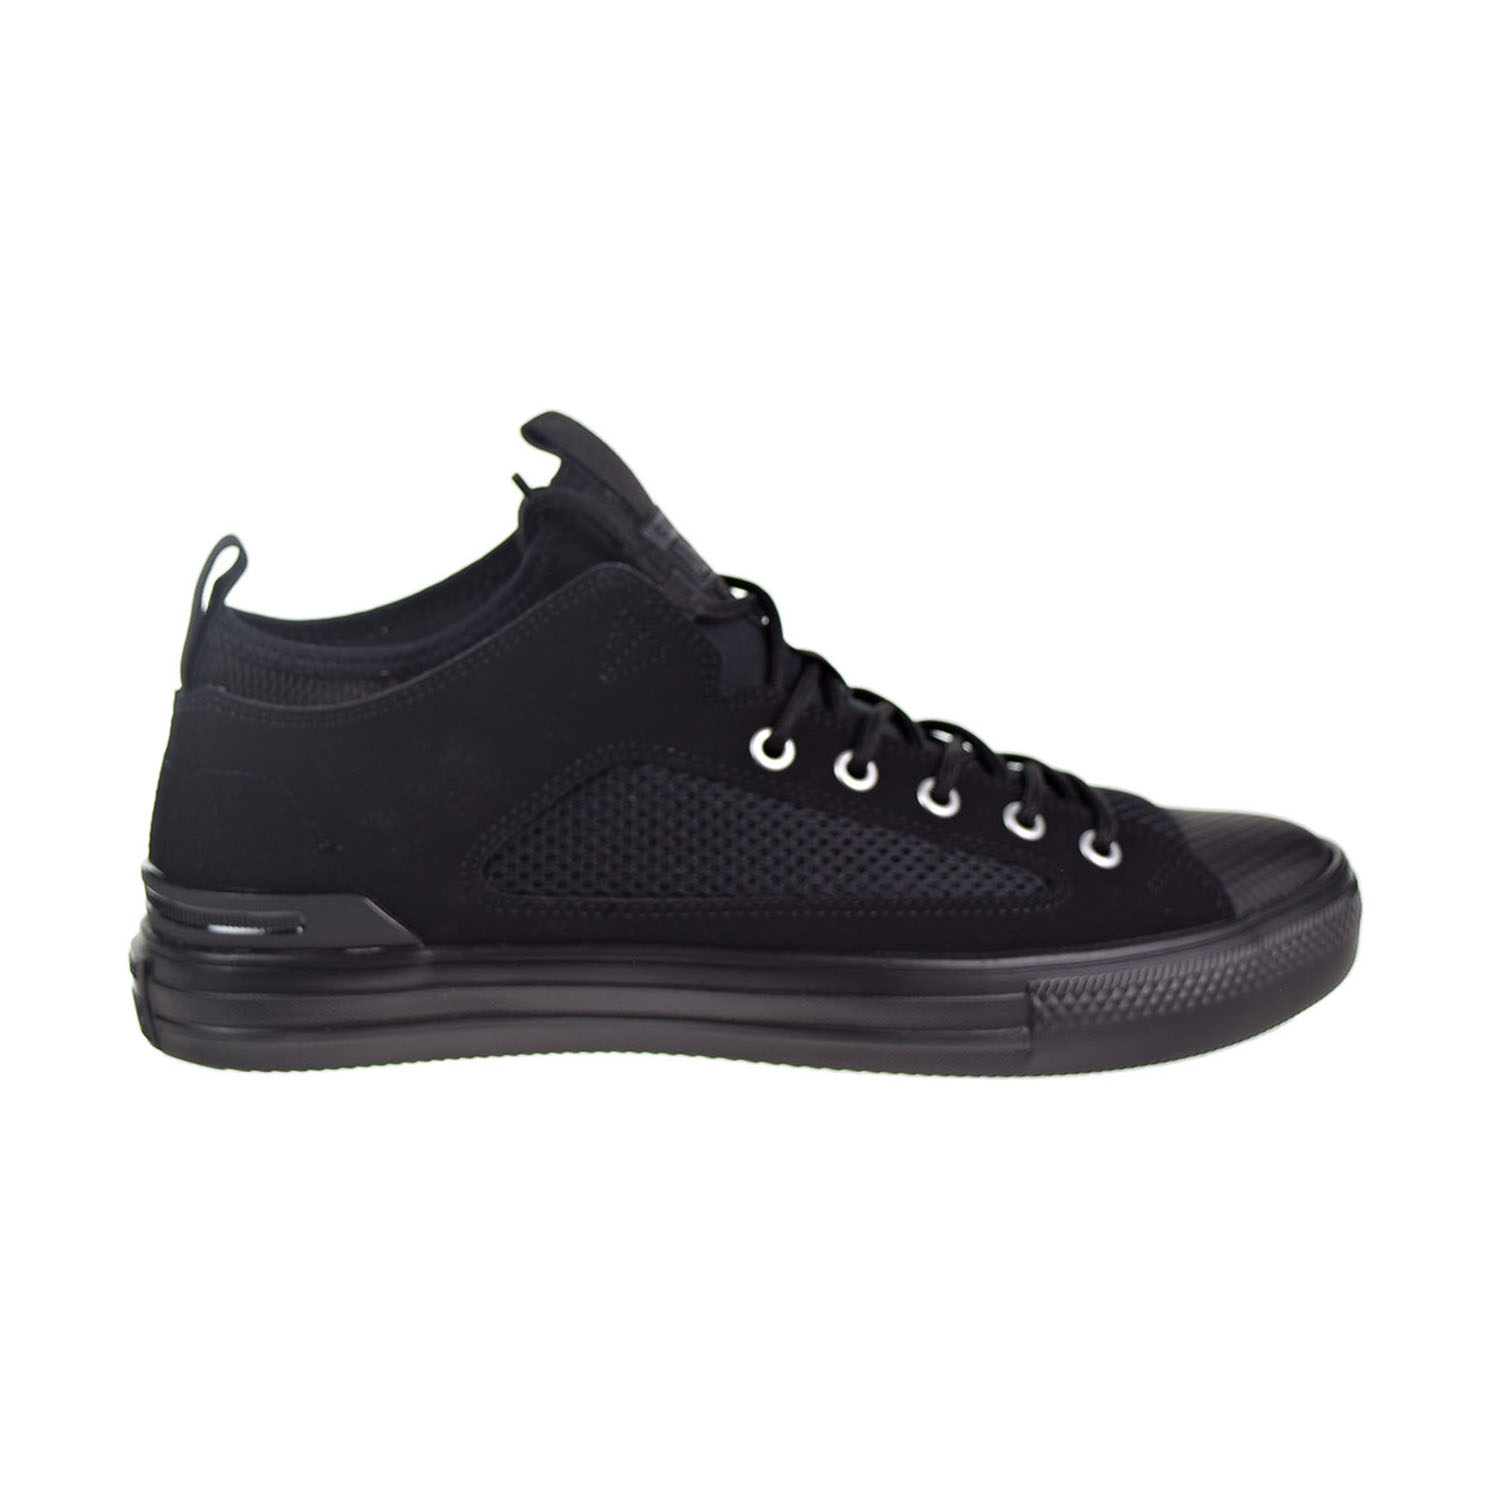 Details about Converse Chuck Taylor All Star Ultra Ox Men's Big Kids' Shoes Black Surplus